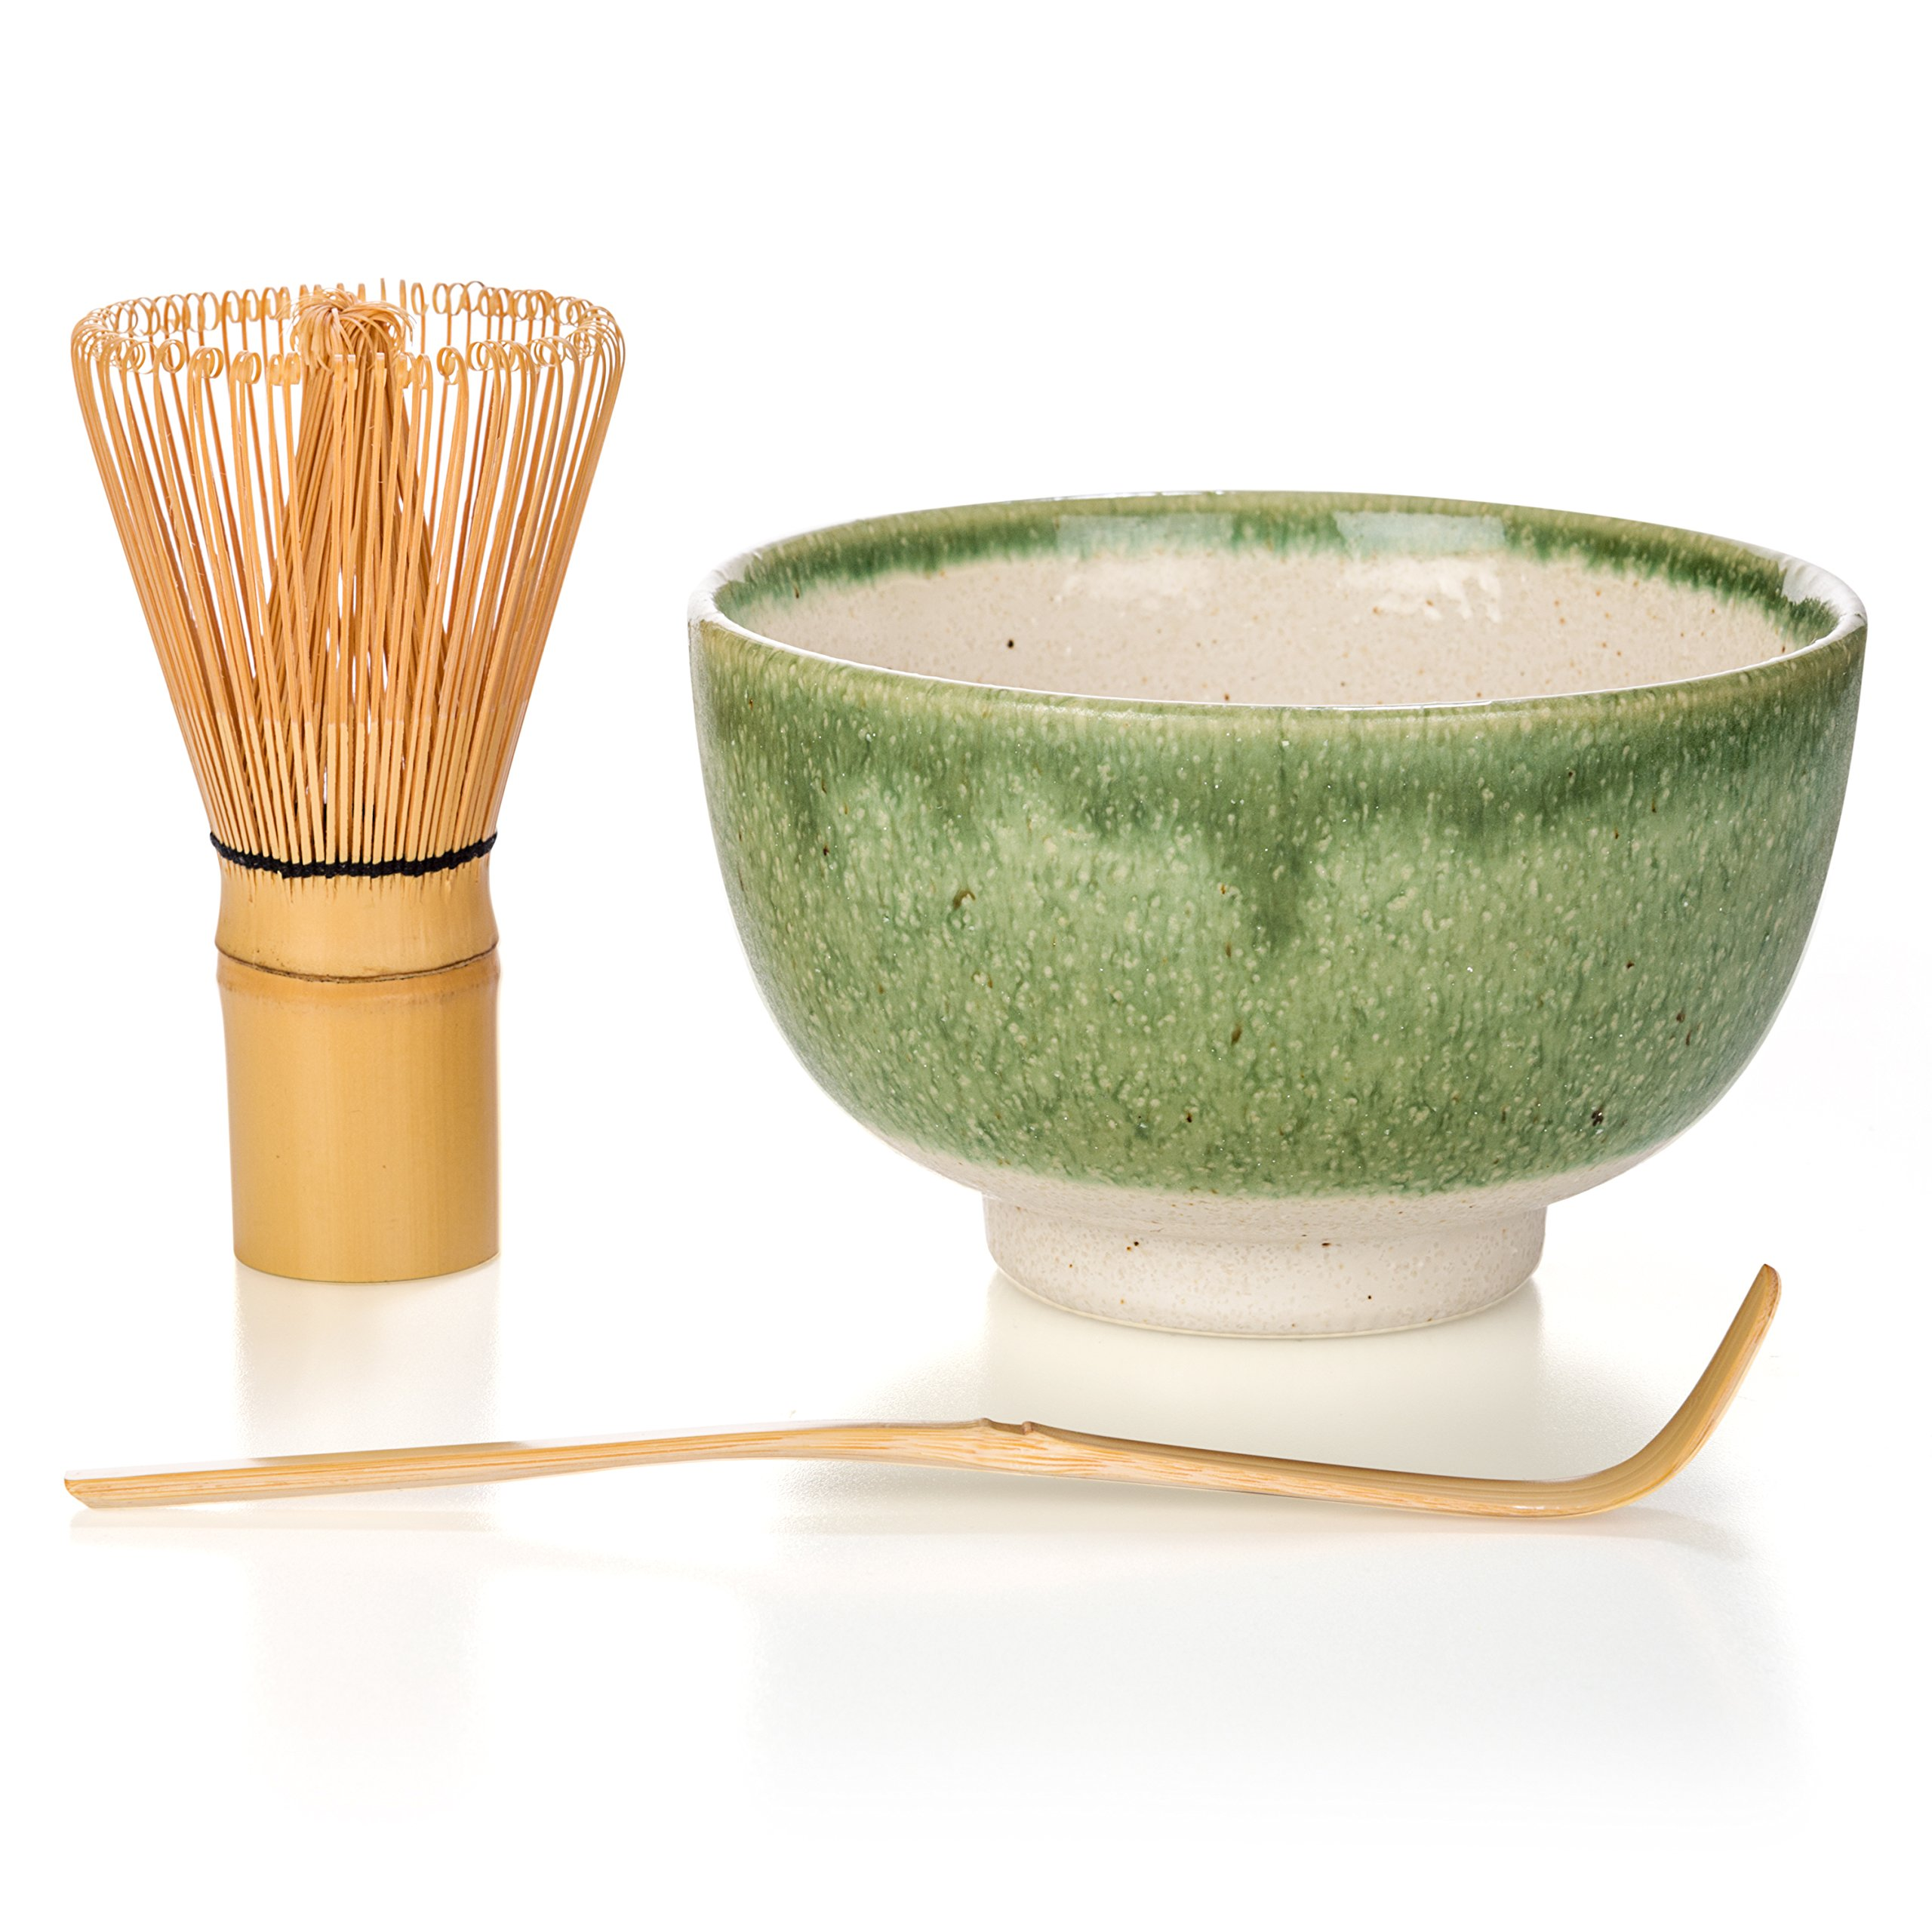 Tealyra - Matcha - Start Up Kit - 3 items - Matcha Green Tea Gift Set - Japanese Made Green Bowl - Bamboo Whisk and Scoop - Gift Box